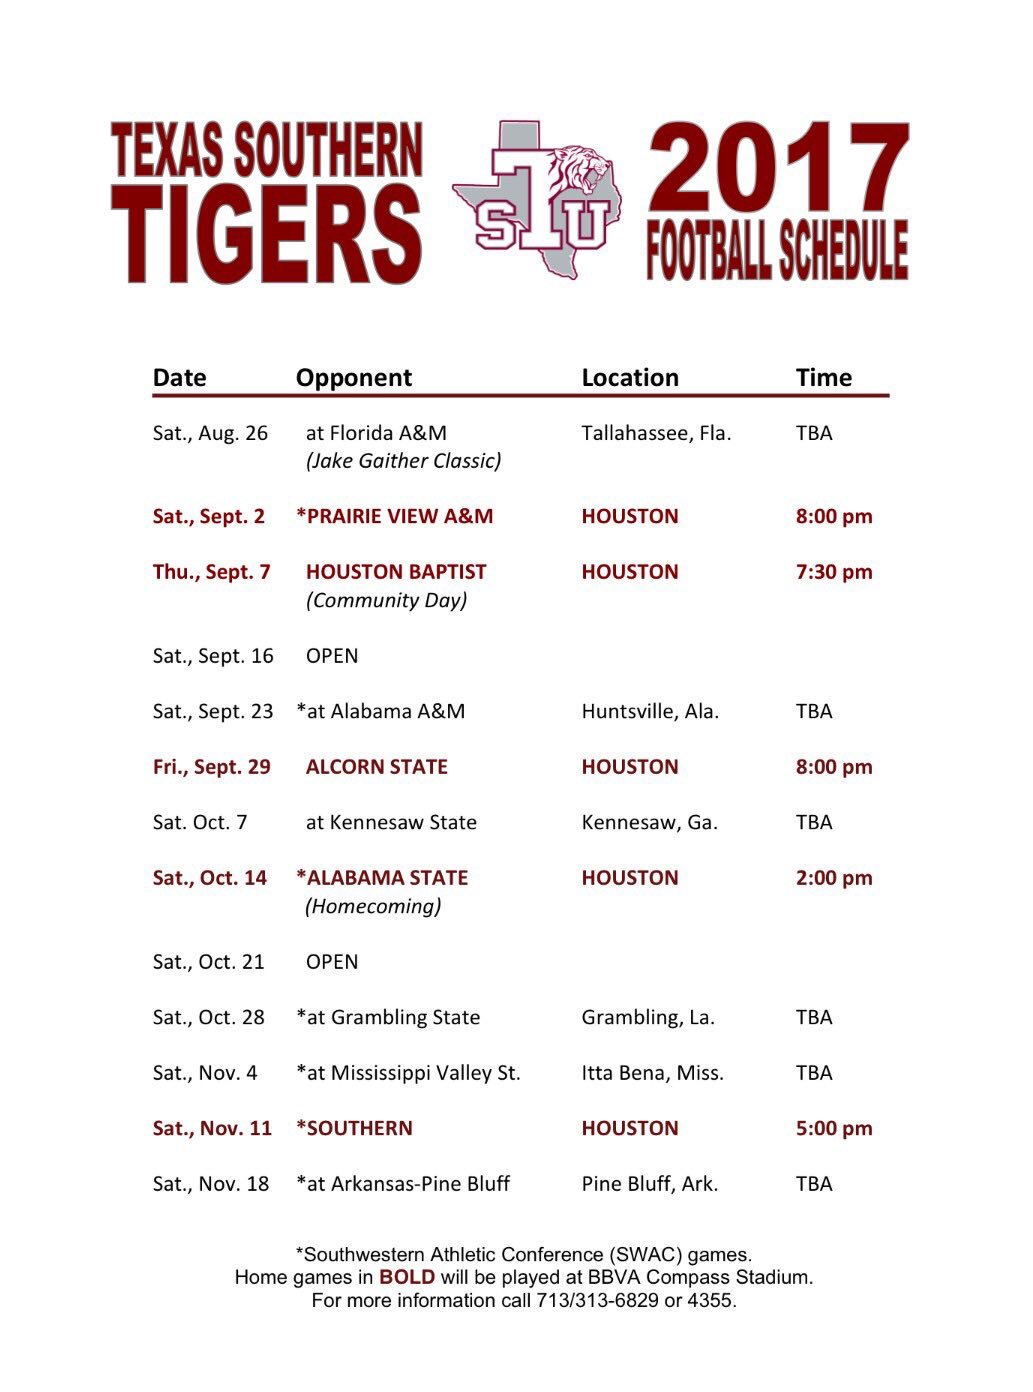 2017 Texas Southern Football Schedule - TigerFans.net